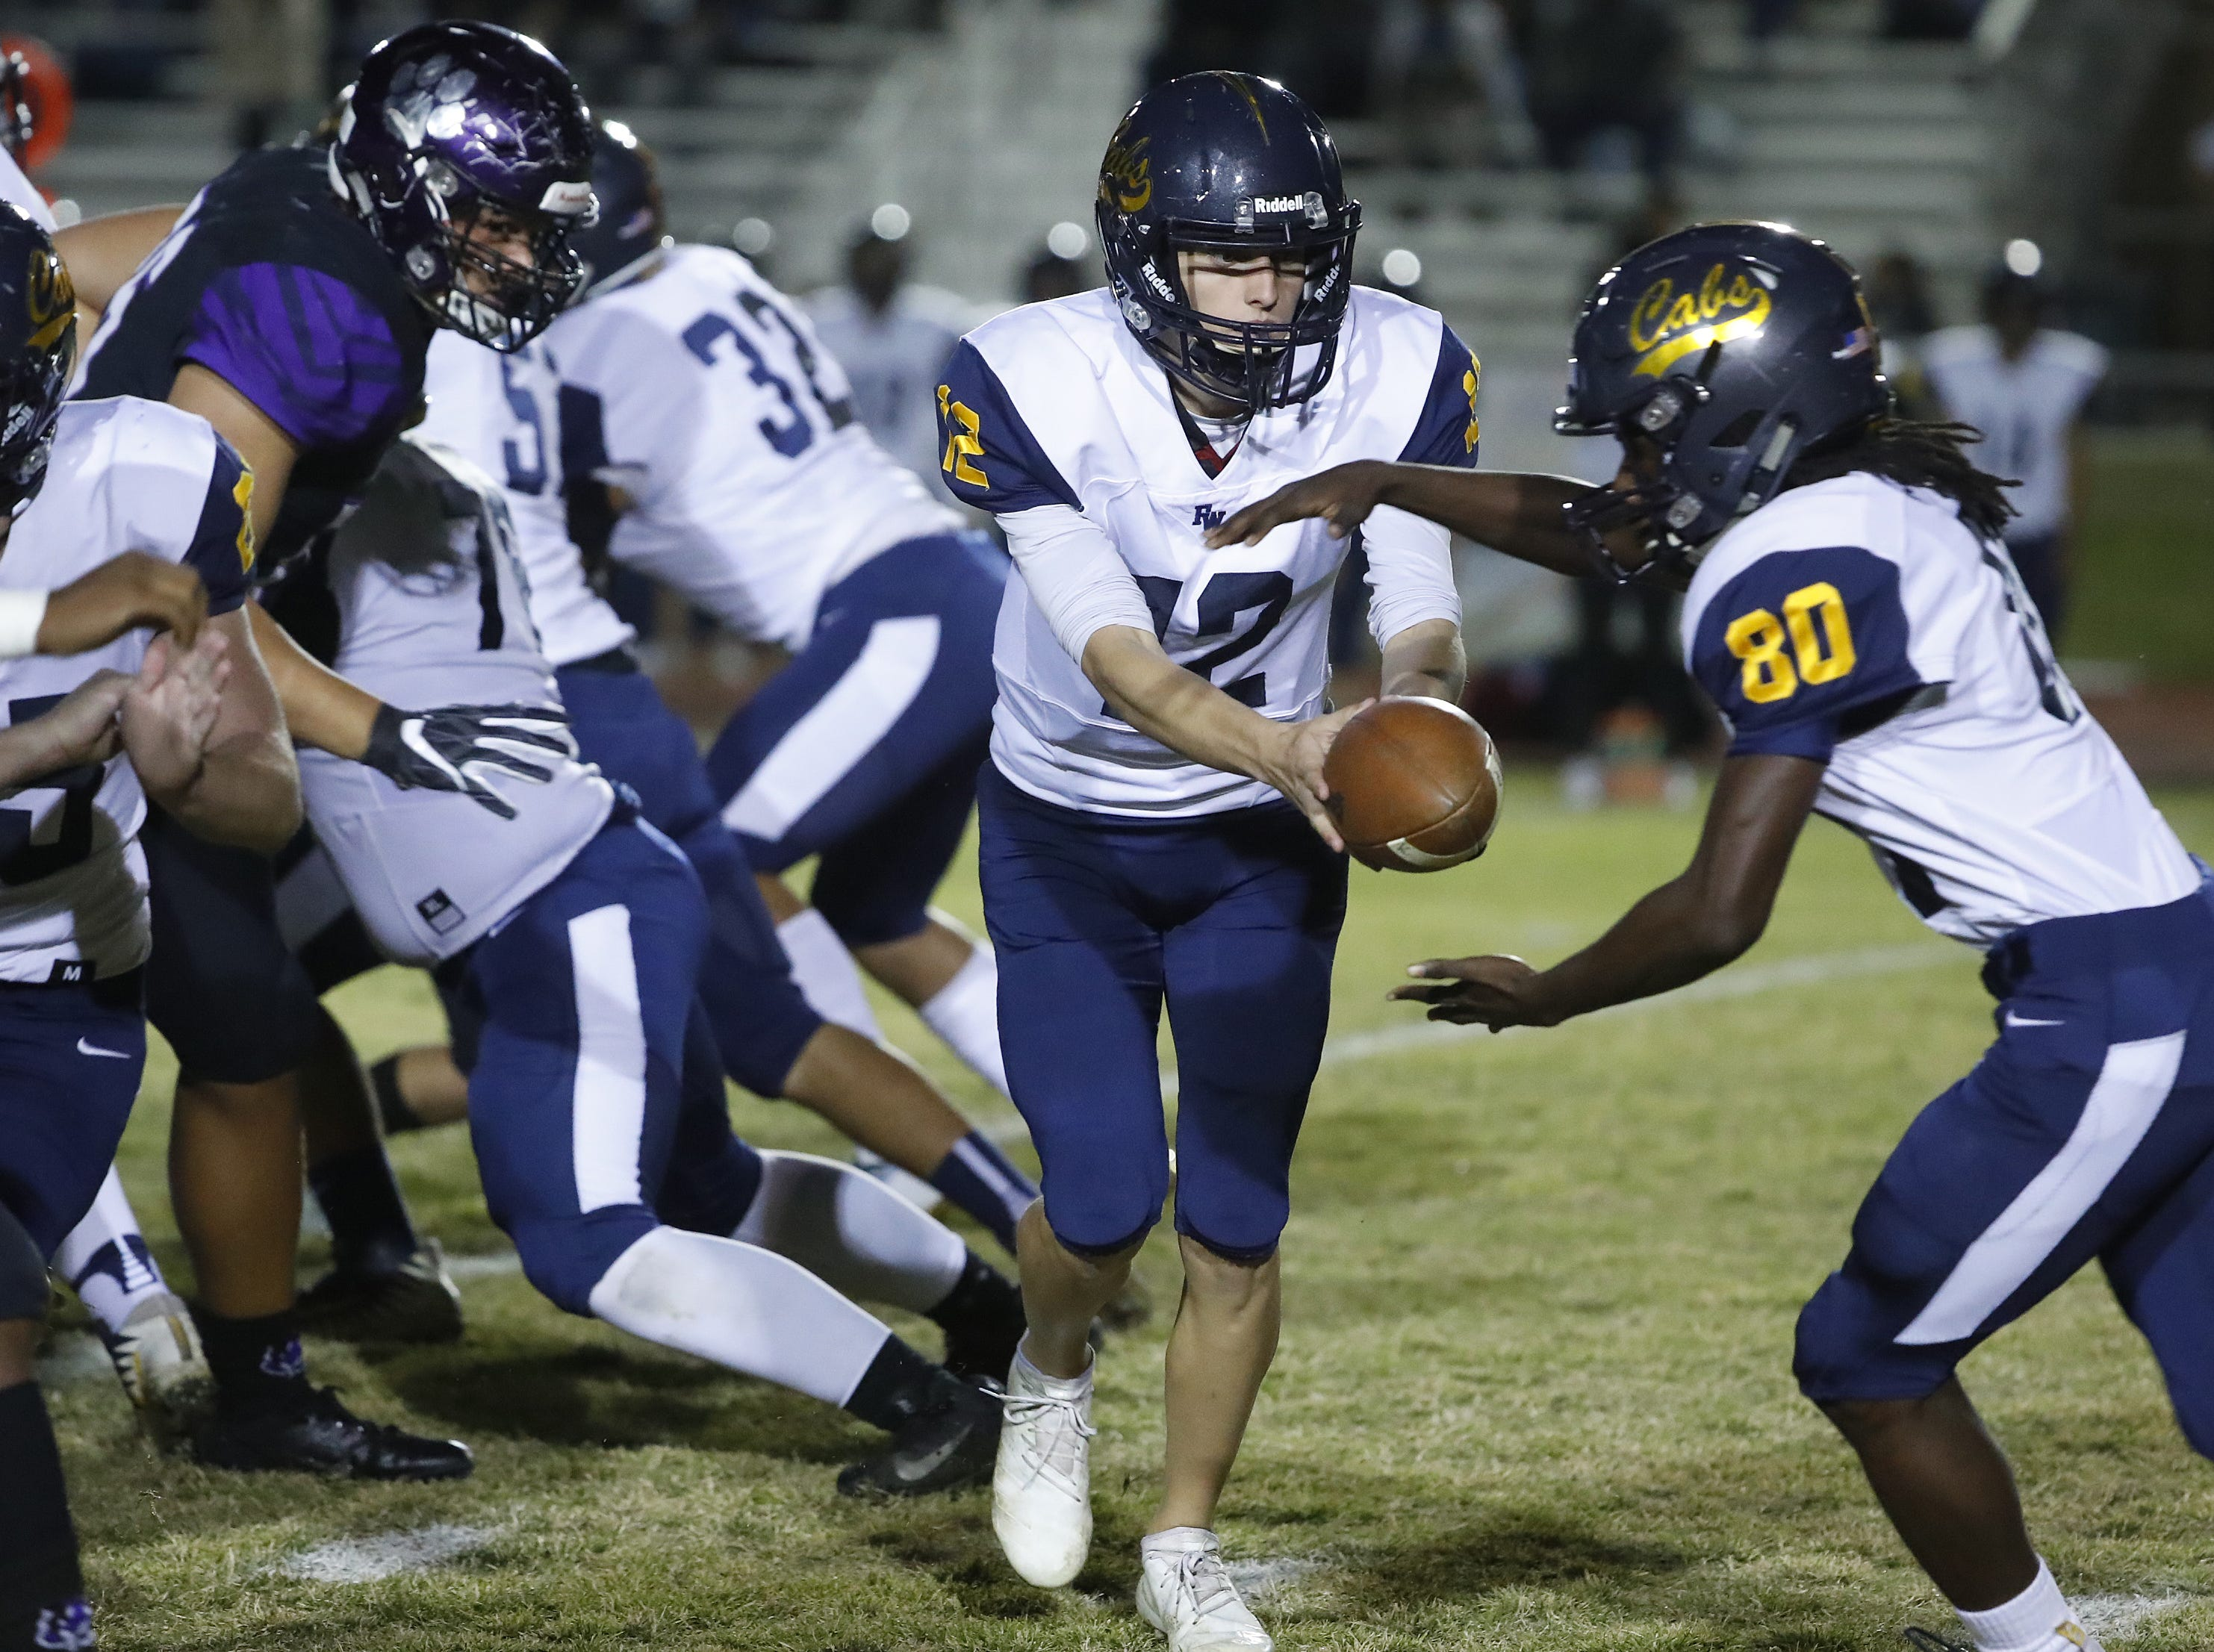 Flowing Wells' Zachary Jurado (12) hands the ball off to Estevan Aragon (20) during the first round of the AIA State Football Playoffs against Millennium at Millennium High School in Goodyear, Ariz. on Nov. 2, 2018.